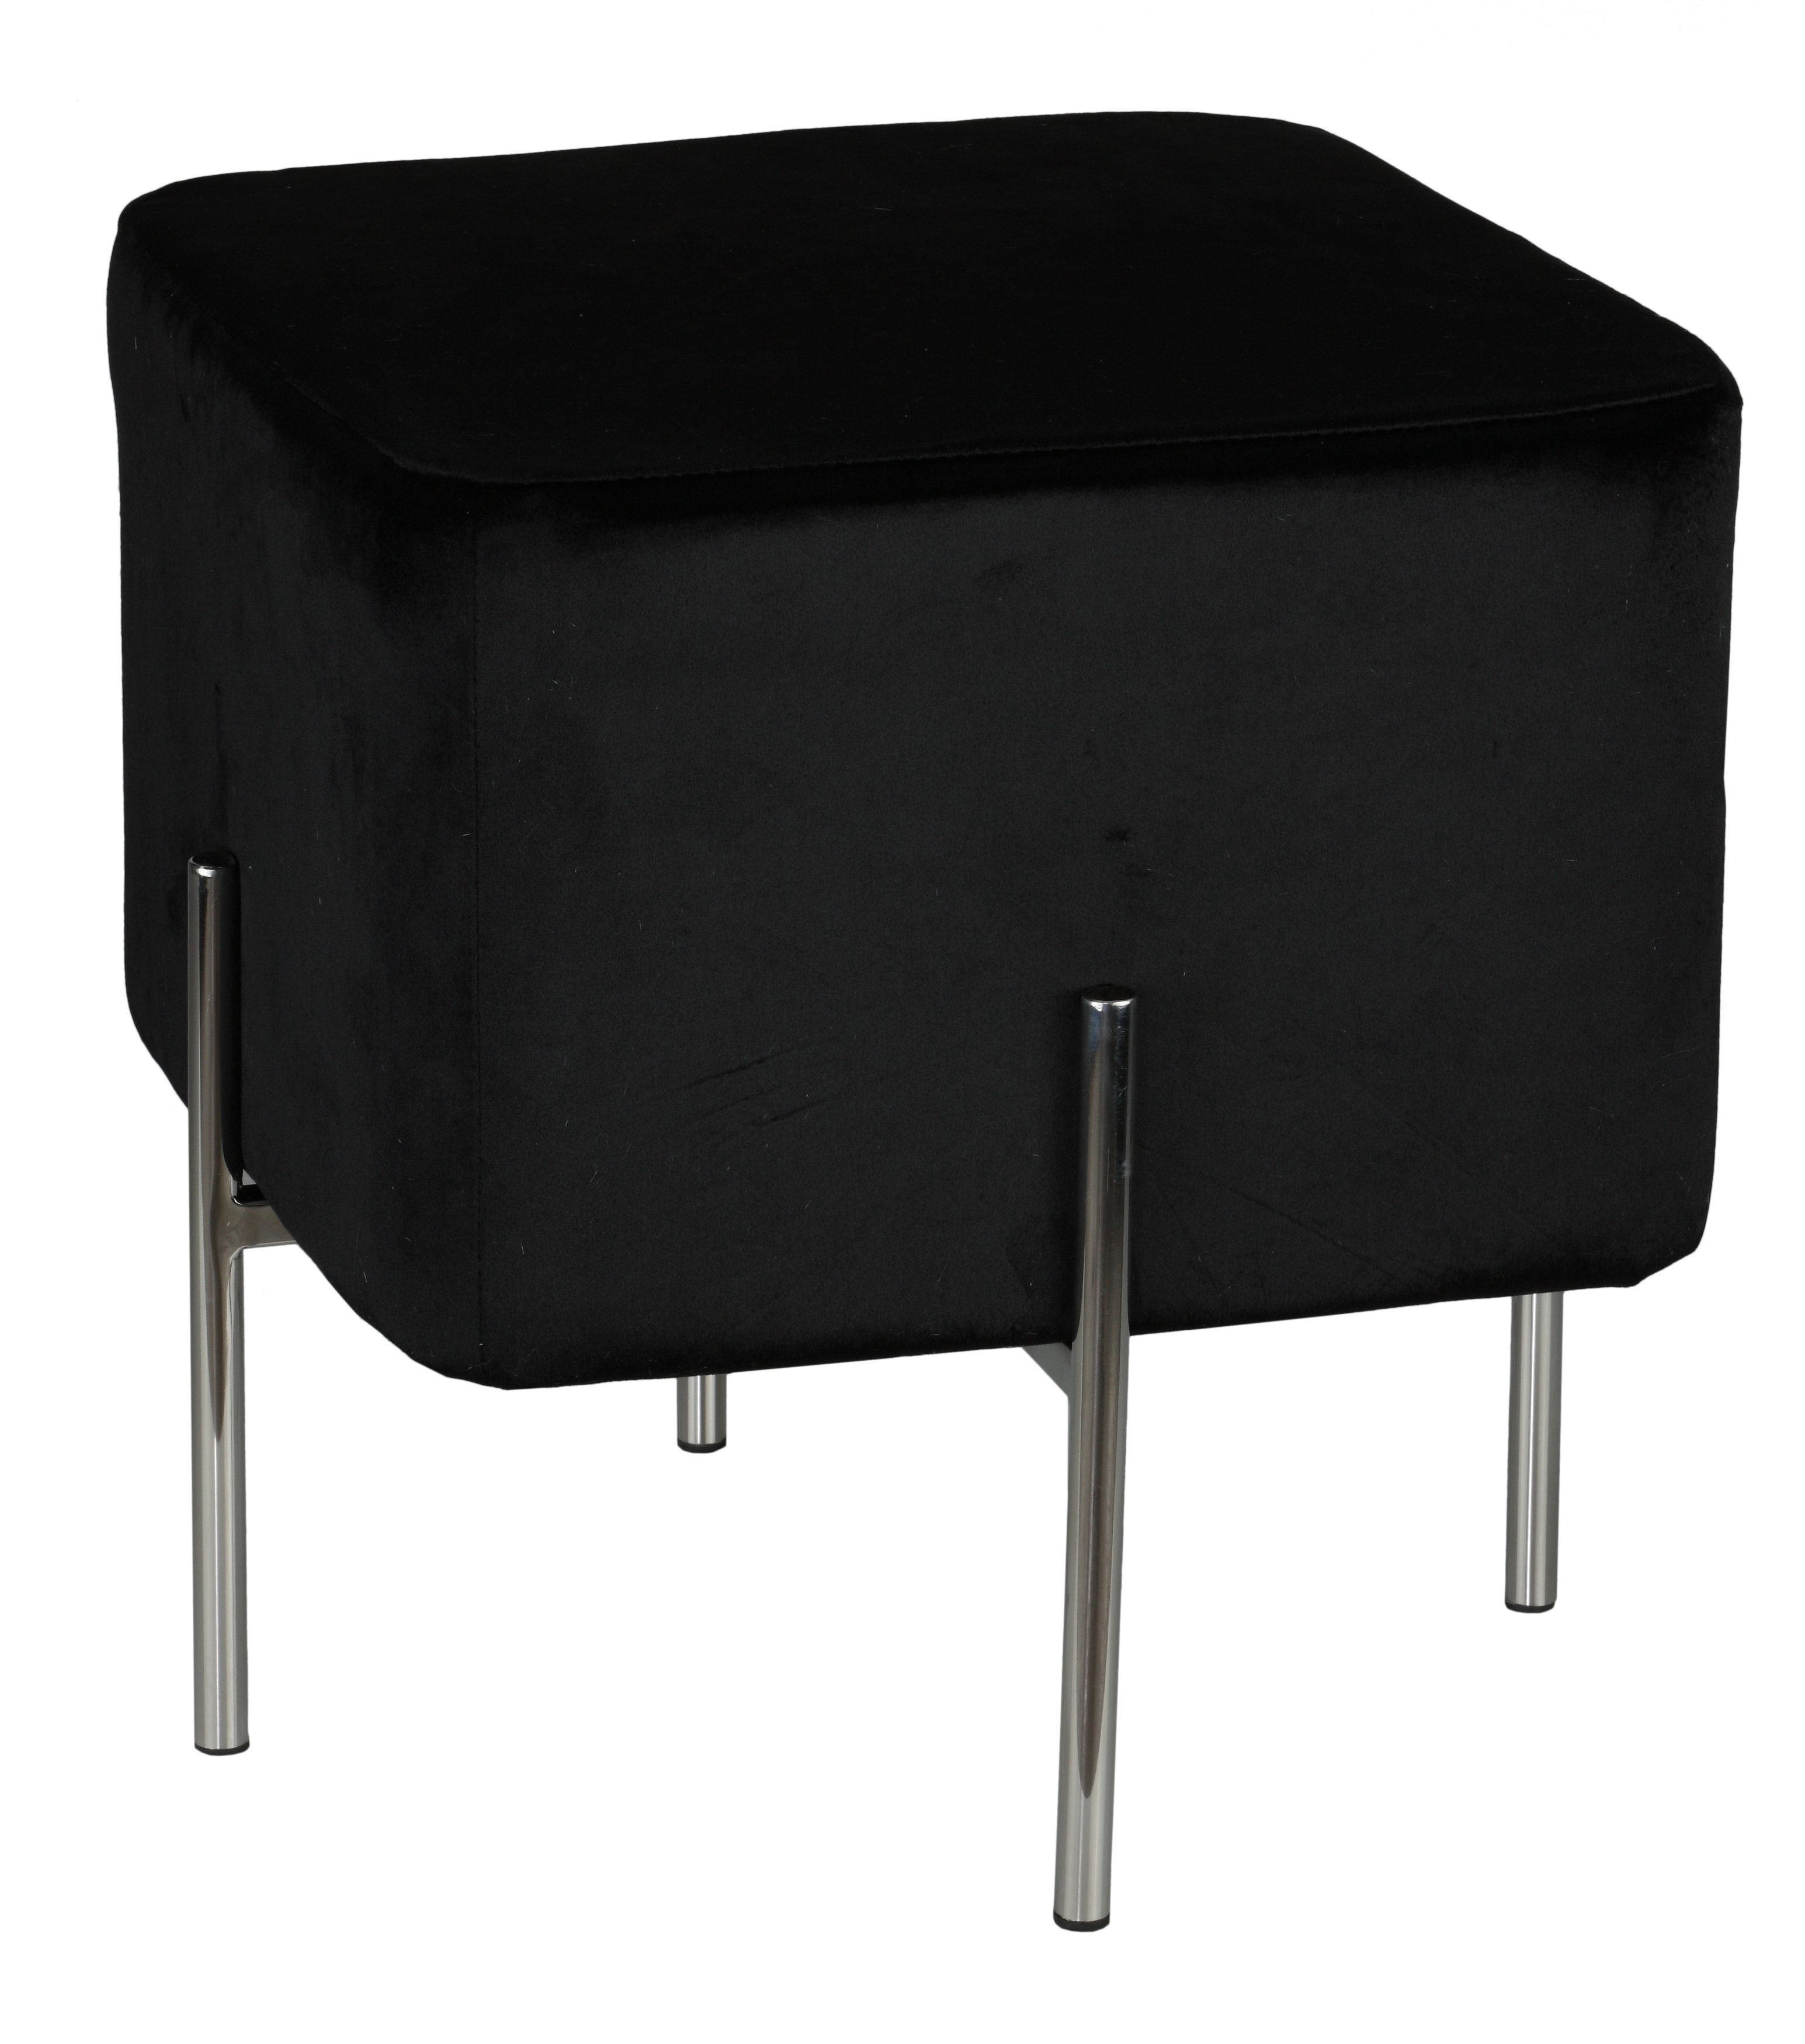 cortesi home zane cocktail ott accent side table wicker patio small square black and mirrored nightstand bathroom furniture full size bunkie board coffee legs heavy duty umbrella